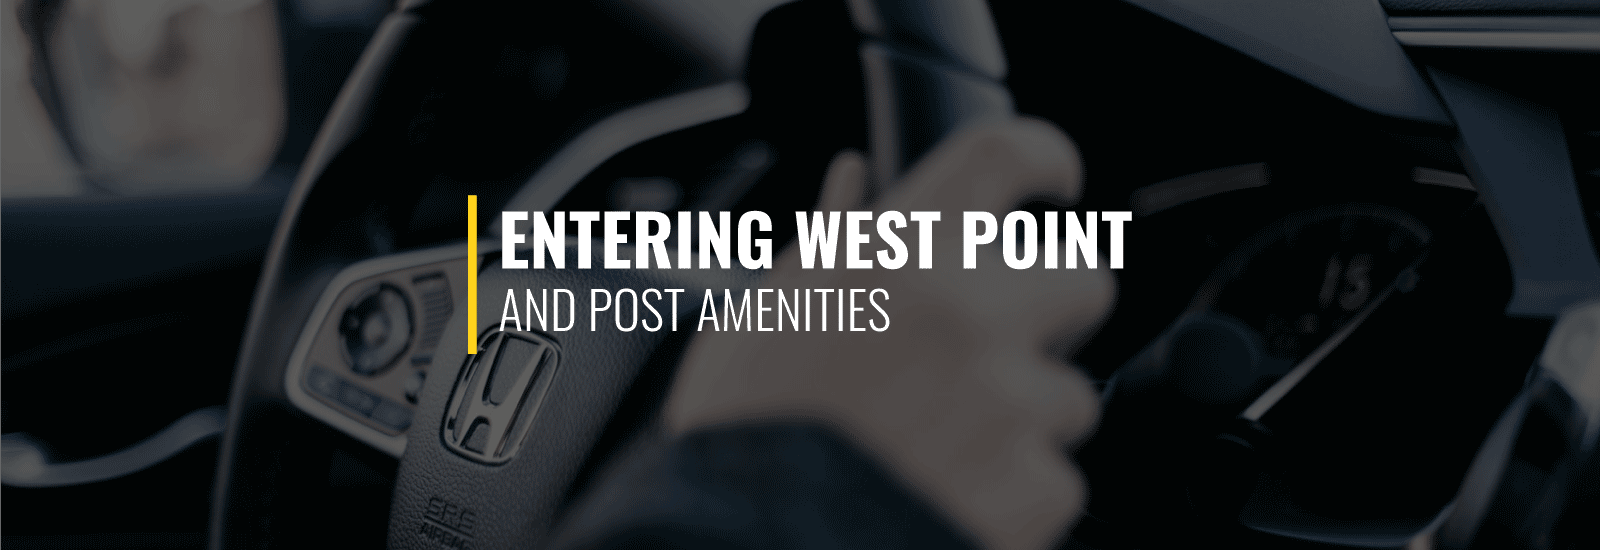 Entering West Point and Post Amenities